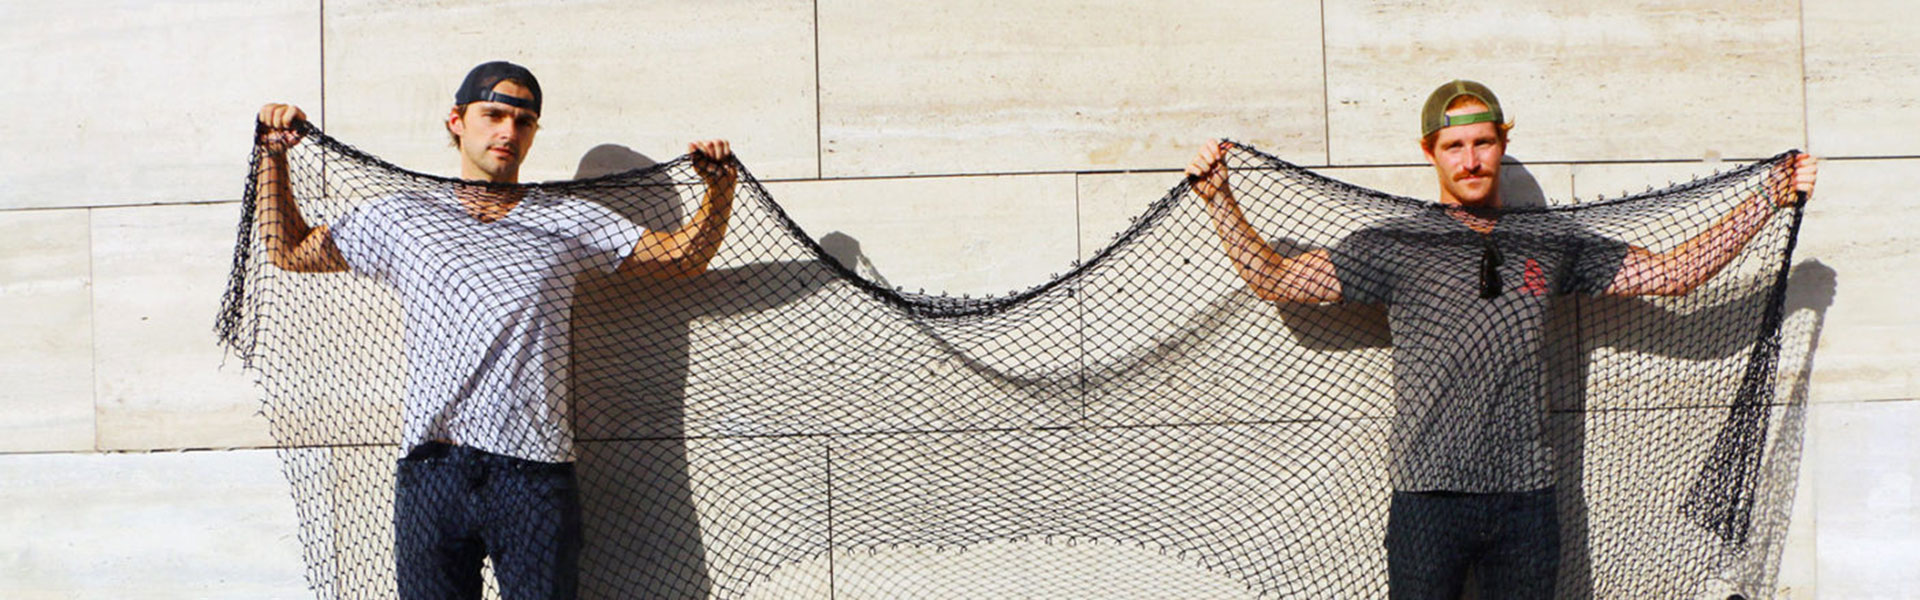 bureo co-founders holding rescued fishing net